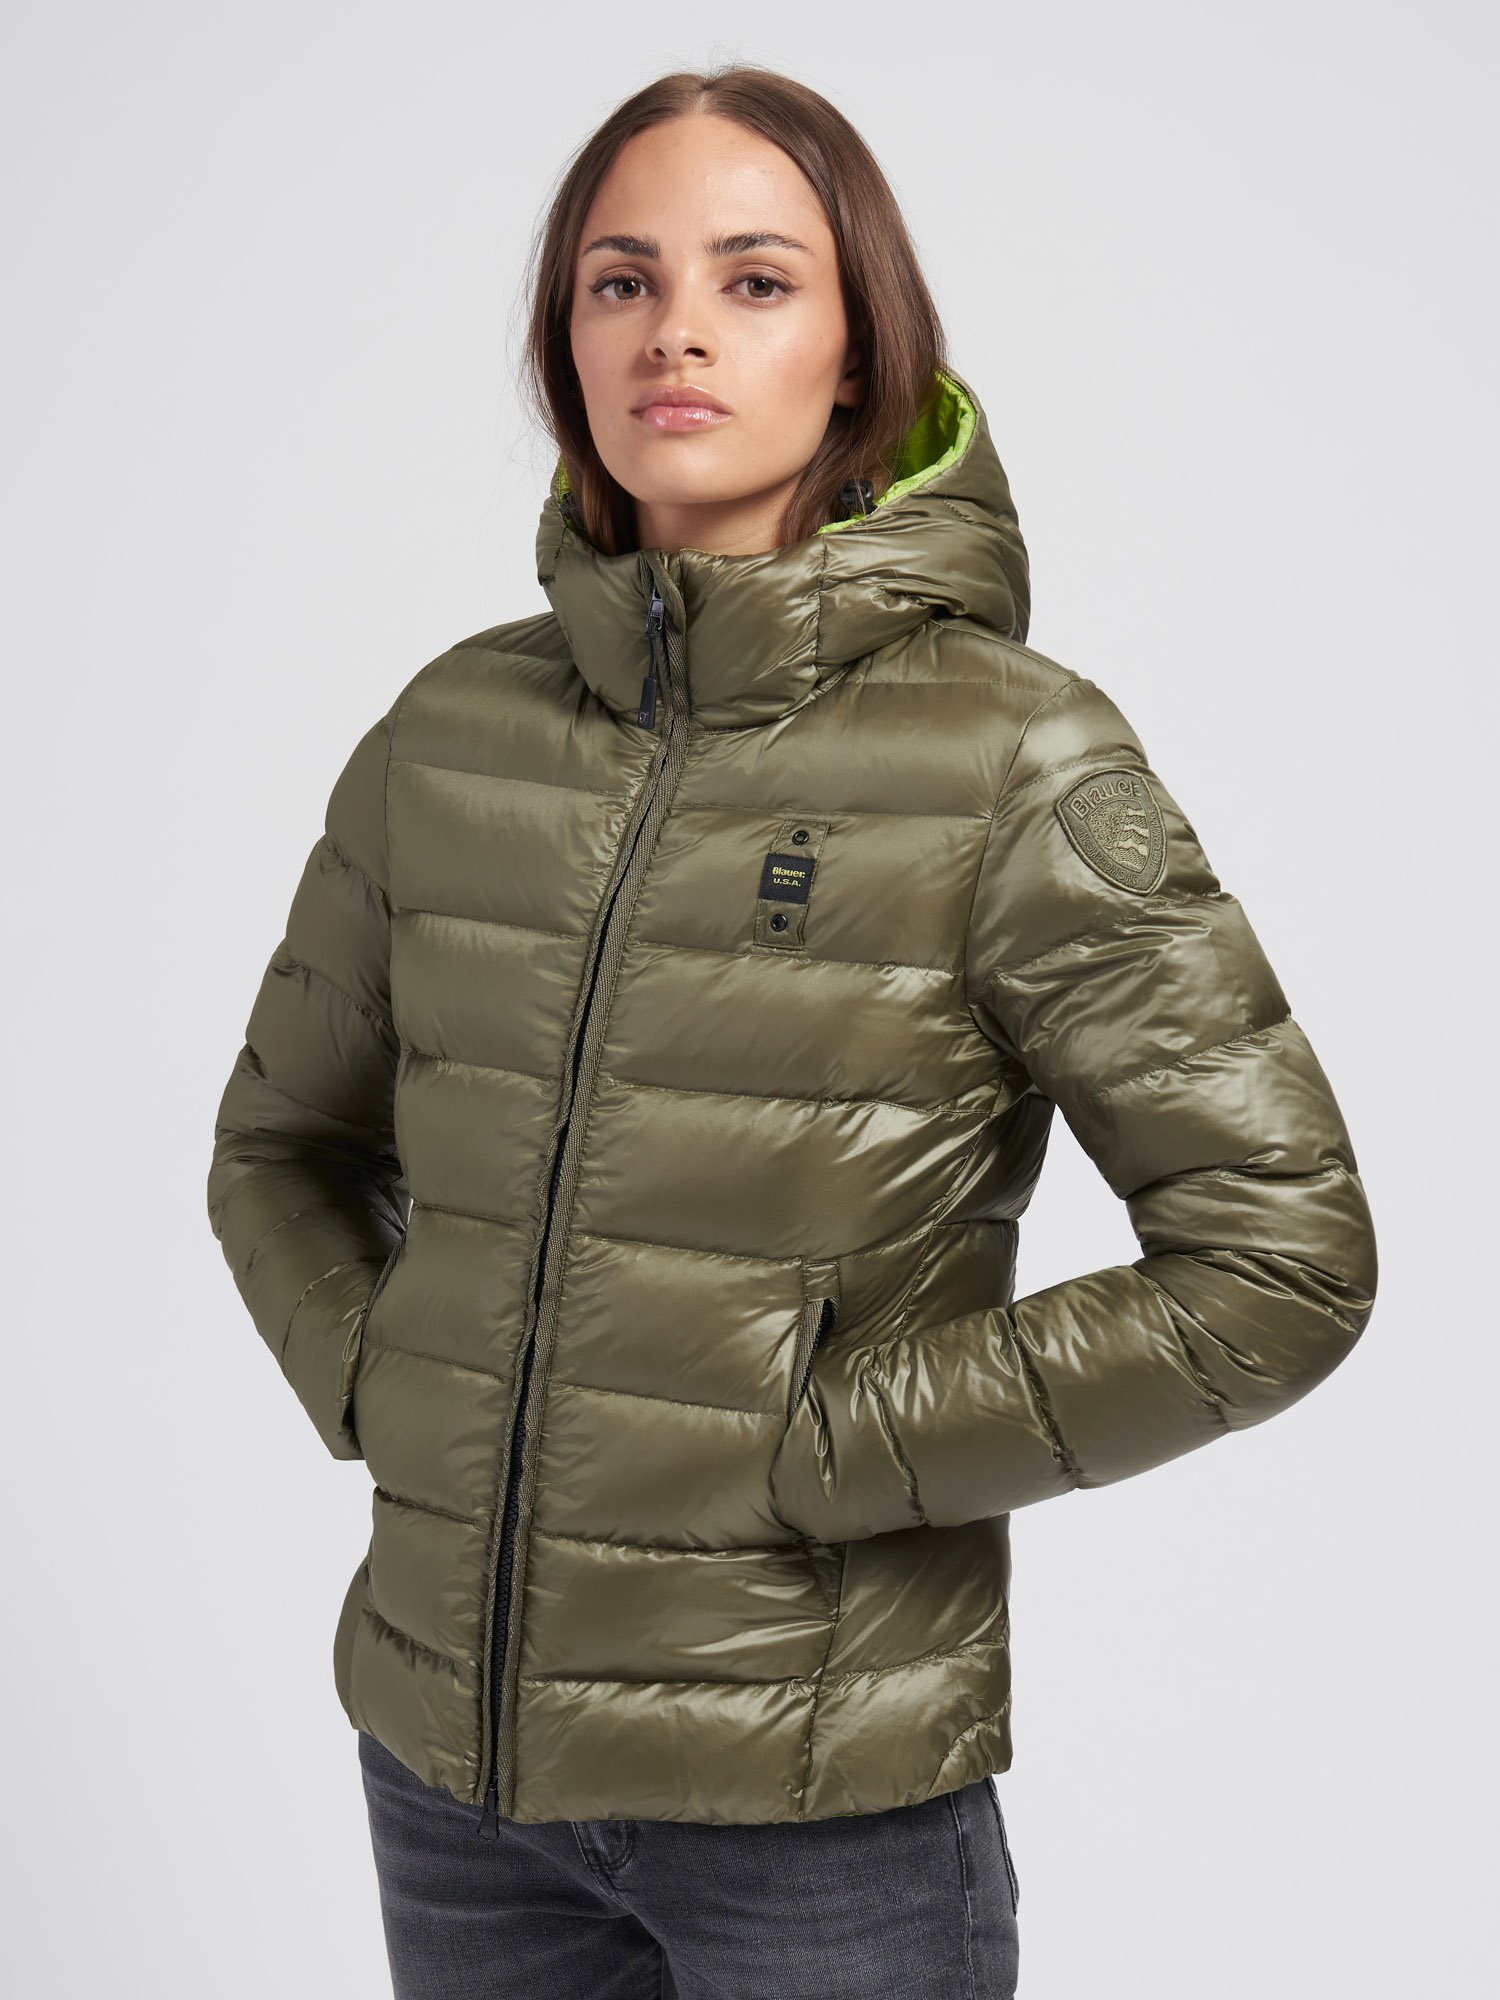 Blauer - KIMBERLY WOMENS QUILTED DOWN JACKET WITH HOOD - Light Green  Ins. Absinthe - Blauer